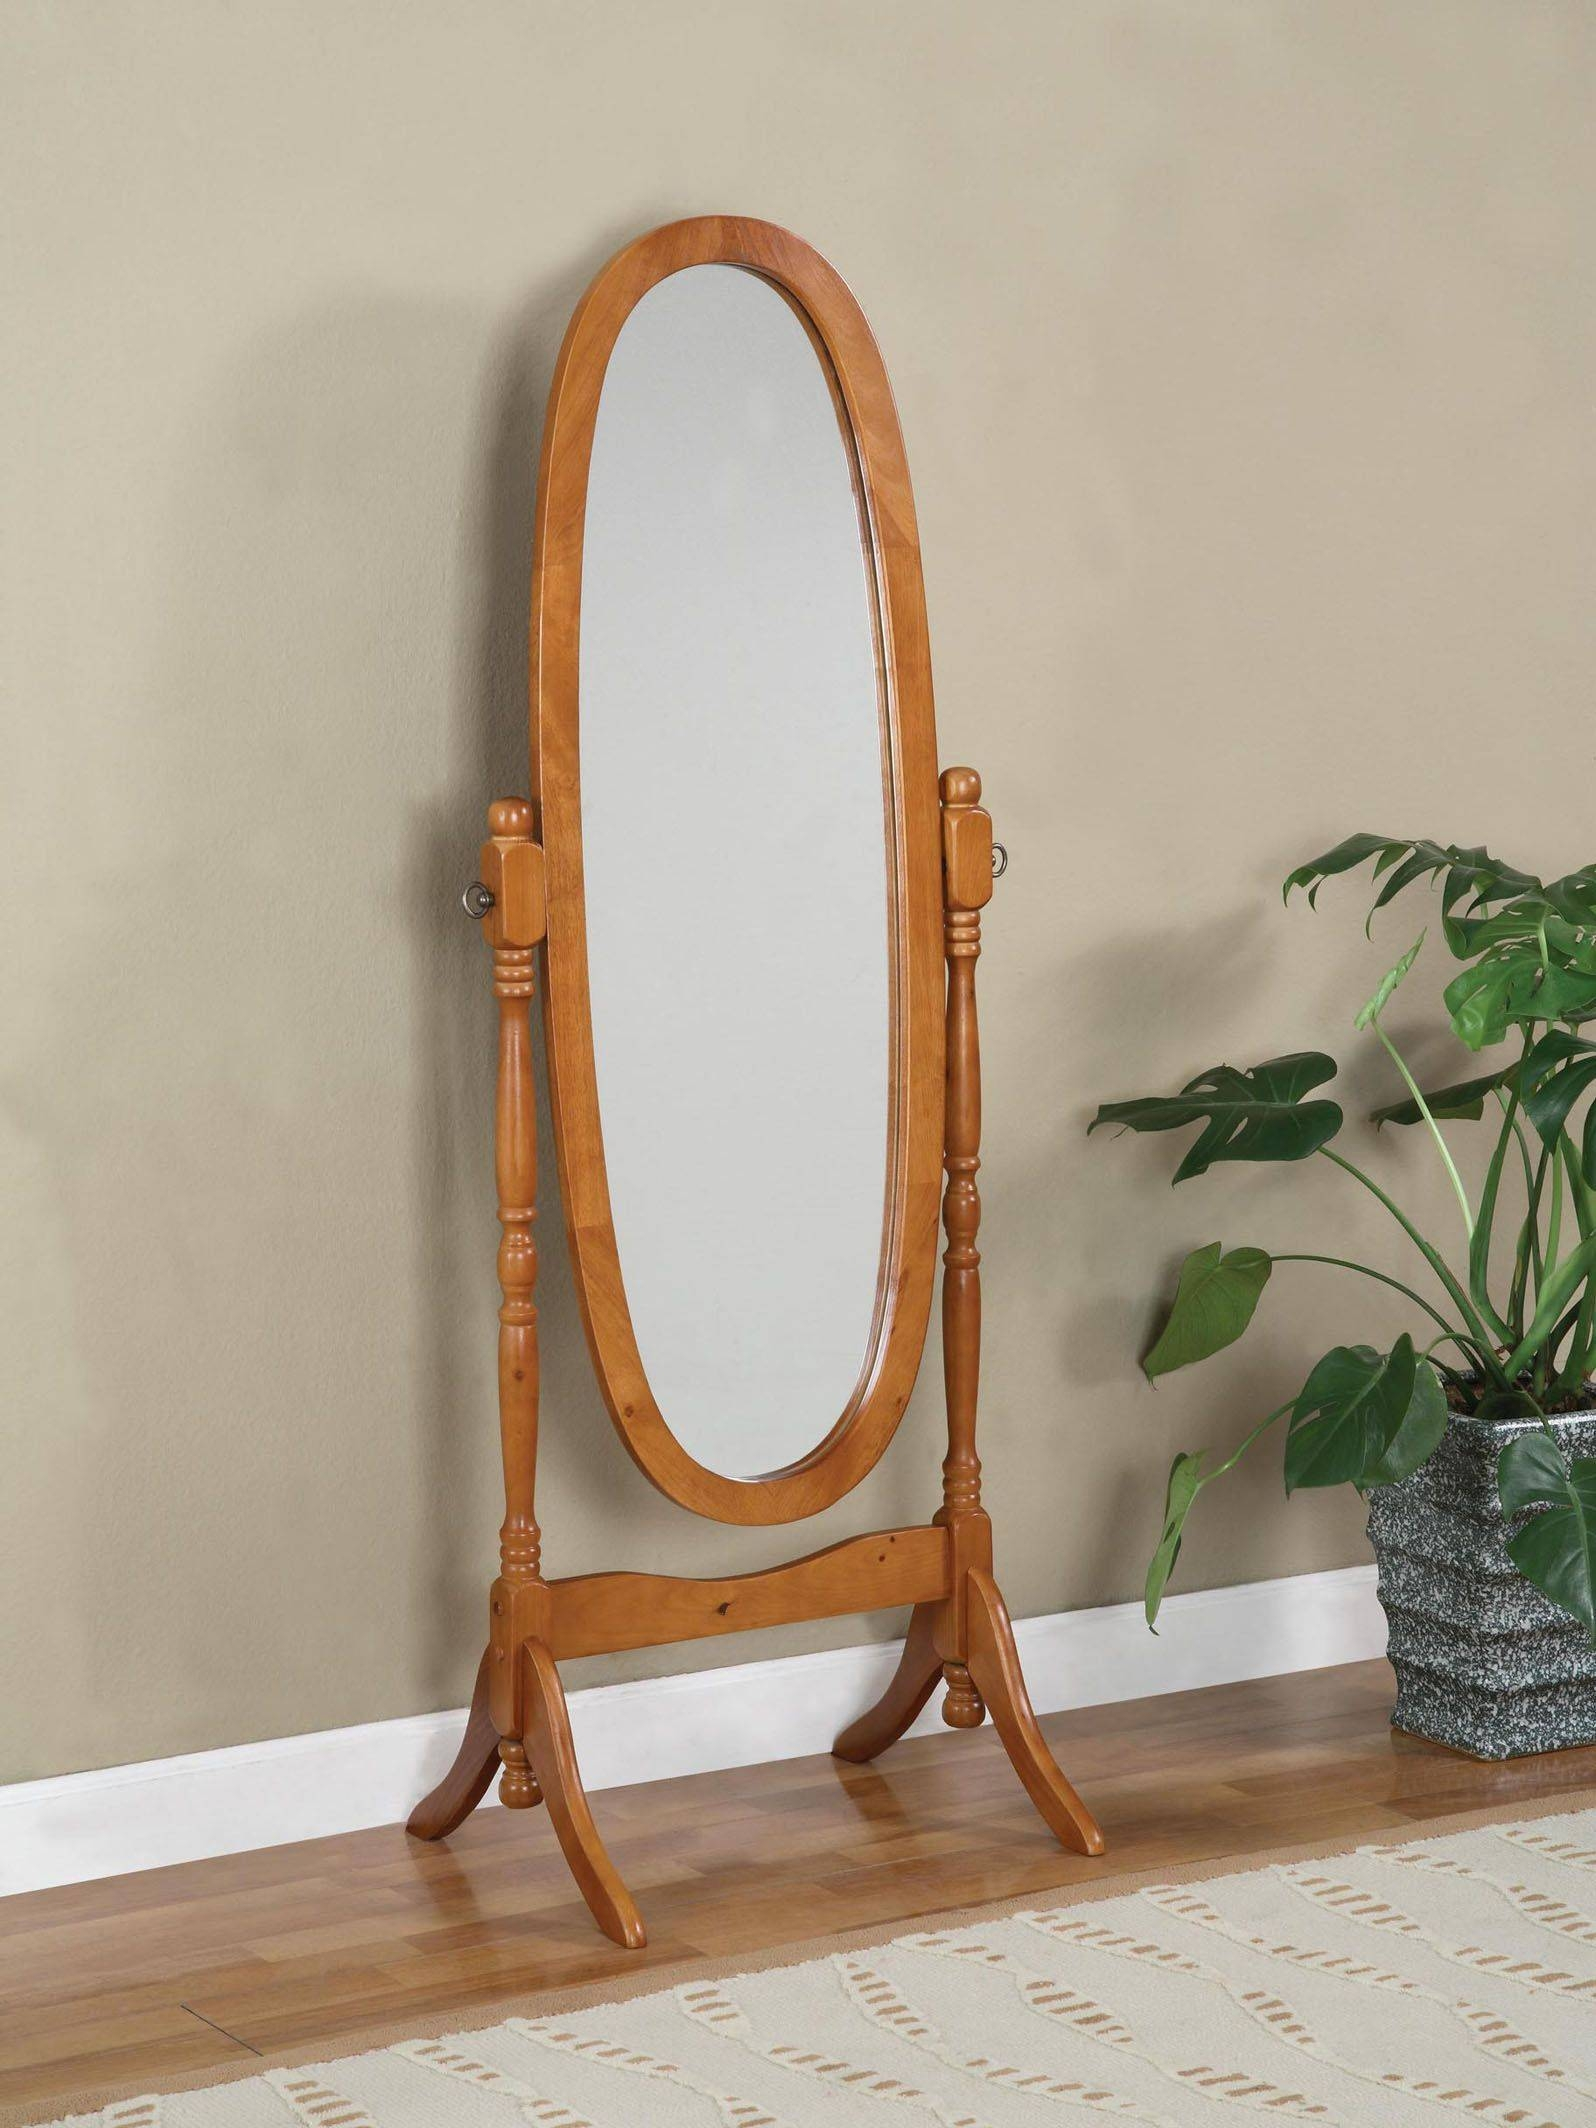 Oak Wooden Cheval Mirror - Functional Decorative Cheval Mirrors inside Cheval Mirrors (Image 23 of 25)